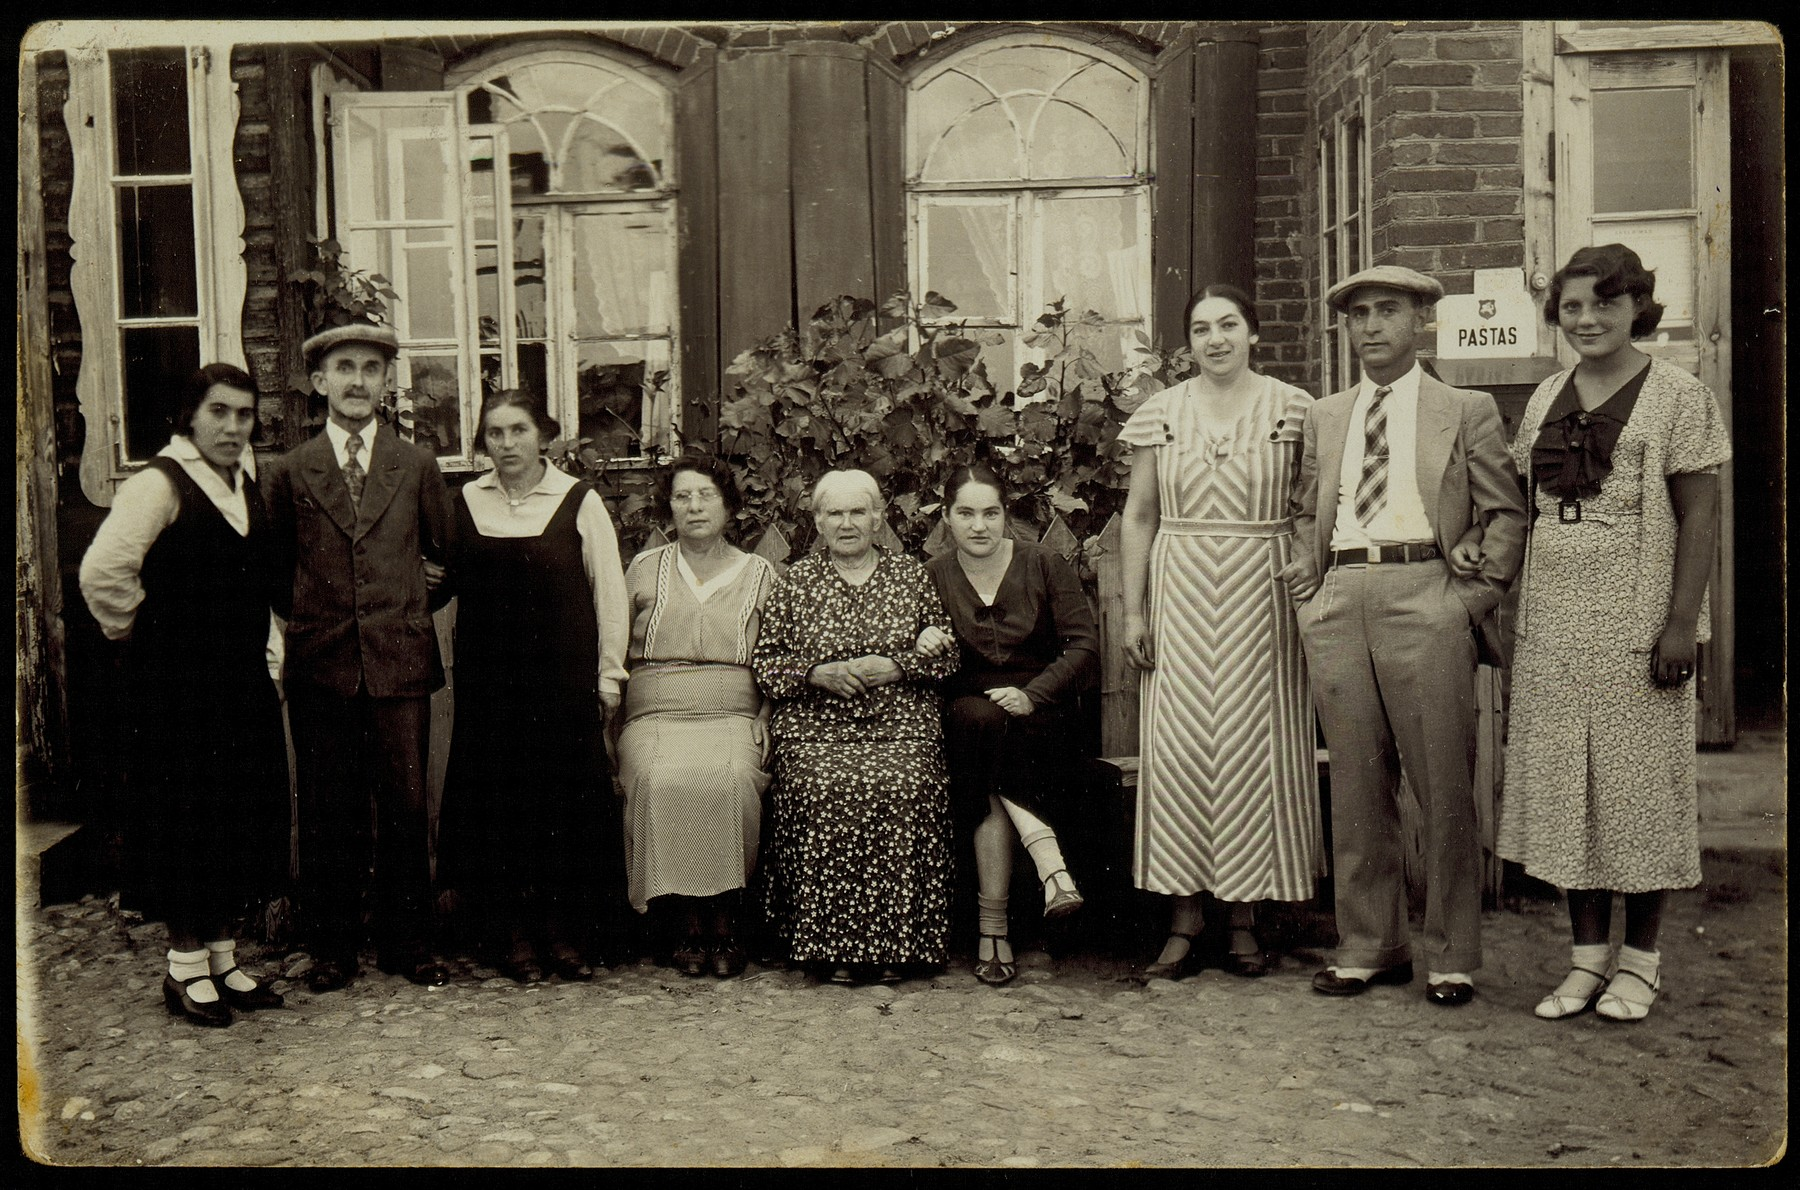 Members of the Zlotnik family gather in Aran on the occasion of a return visit by Yehuda-Leib Zlotnik from America.    From left to right: Frieda Shoob, Hirsh Pruser, Fradl, Kunie's sister and mother of Roslyn Kablin, Bertha Margolis, a U.S. citizen, Mirl Resnik, Kunie Zlotnik's mother, Shifra, Kunie's sister, Kunie Resnik Zlotnik, husband, Yehuda-Leib Zlotnik, Gladys Ball, Bertha Margolis' daughter, a U.S. citizen.   Mirl Resnik and her daughter Fradl were murdered by Lithuanians.  Shifra and her husband and three children were murdered in their home by the Germans in retaliation for the shooting of a German soldier while riding a motorcycle in the vicinity.  Kunie and Yehuda Zlotnik immigrated to Palestine.